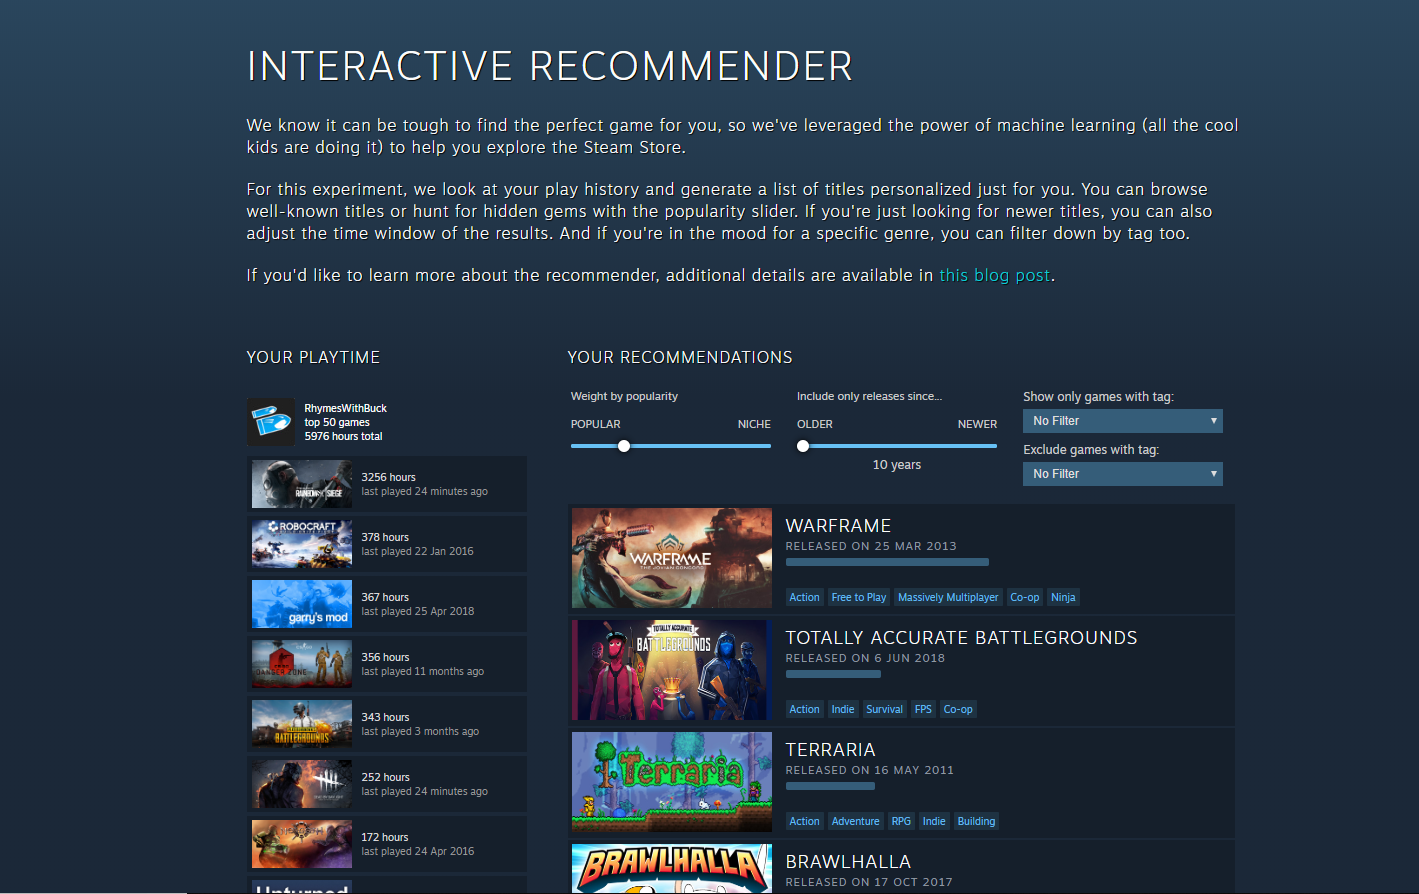 Interactive Recommender